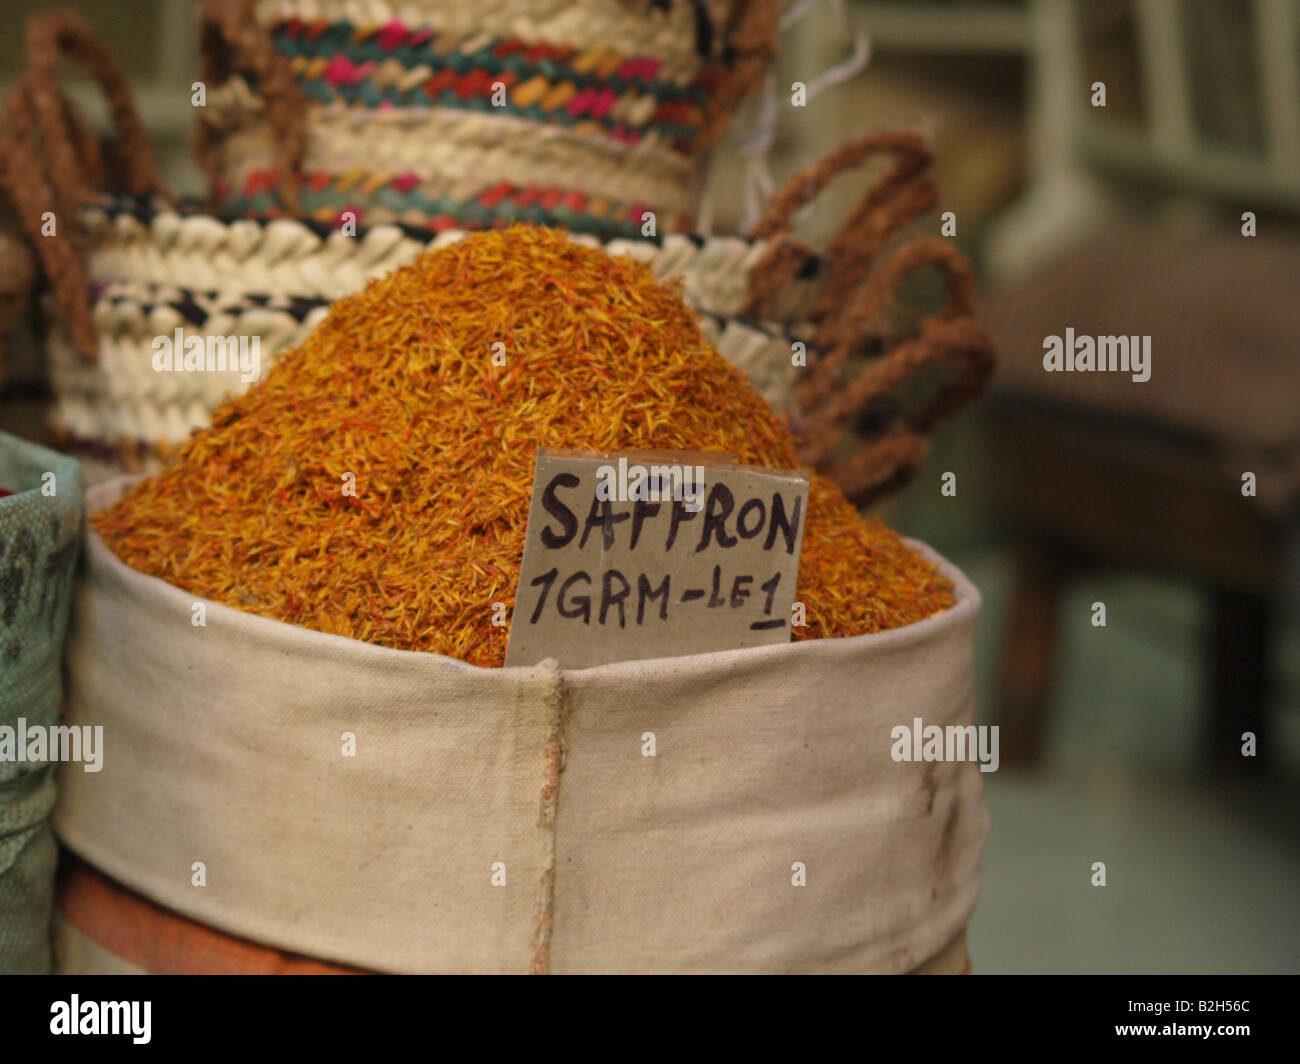 Spices for sale at an Egyptian bazaar in Luxor - Stock Image